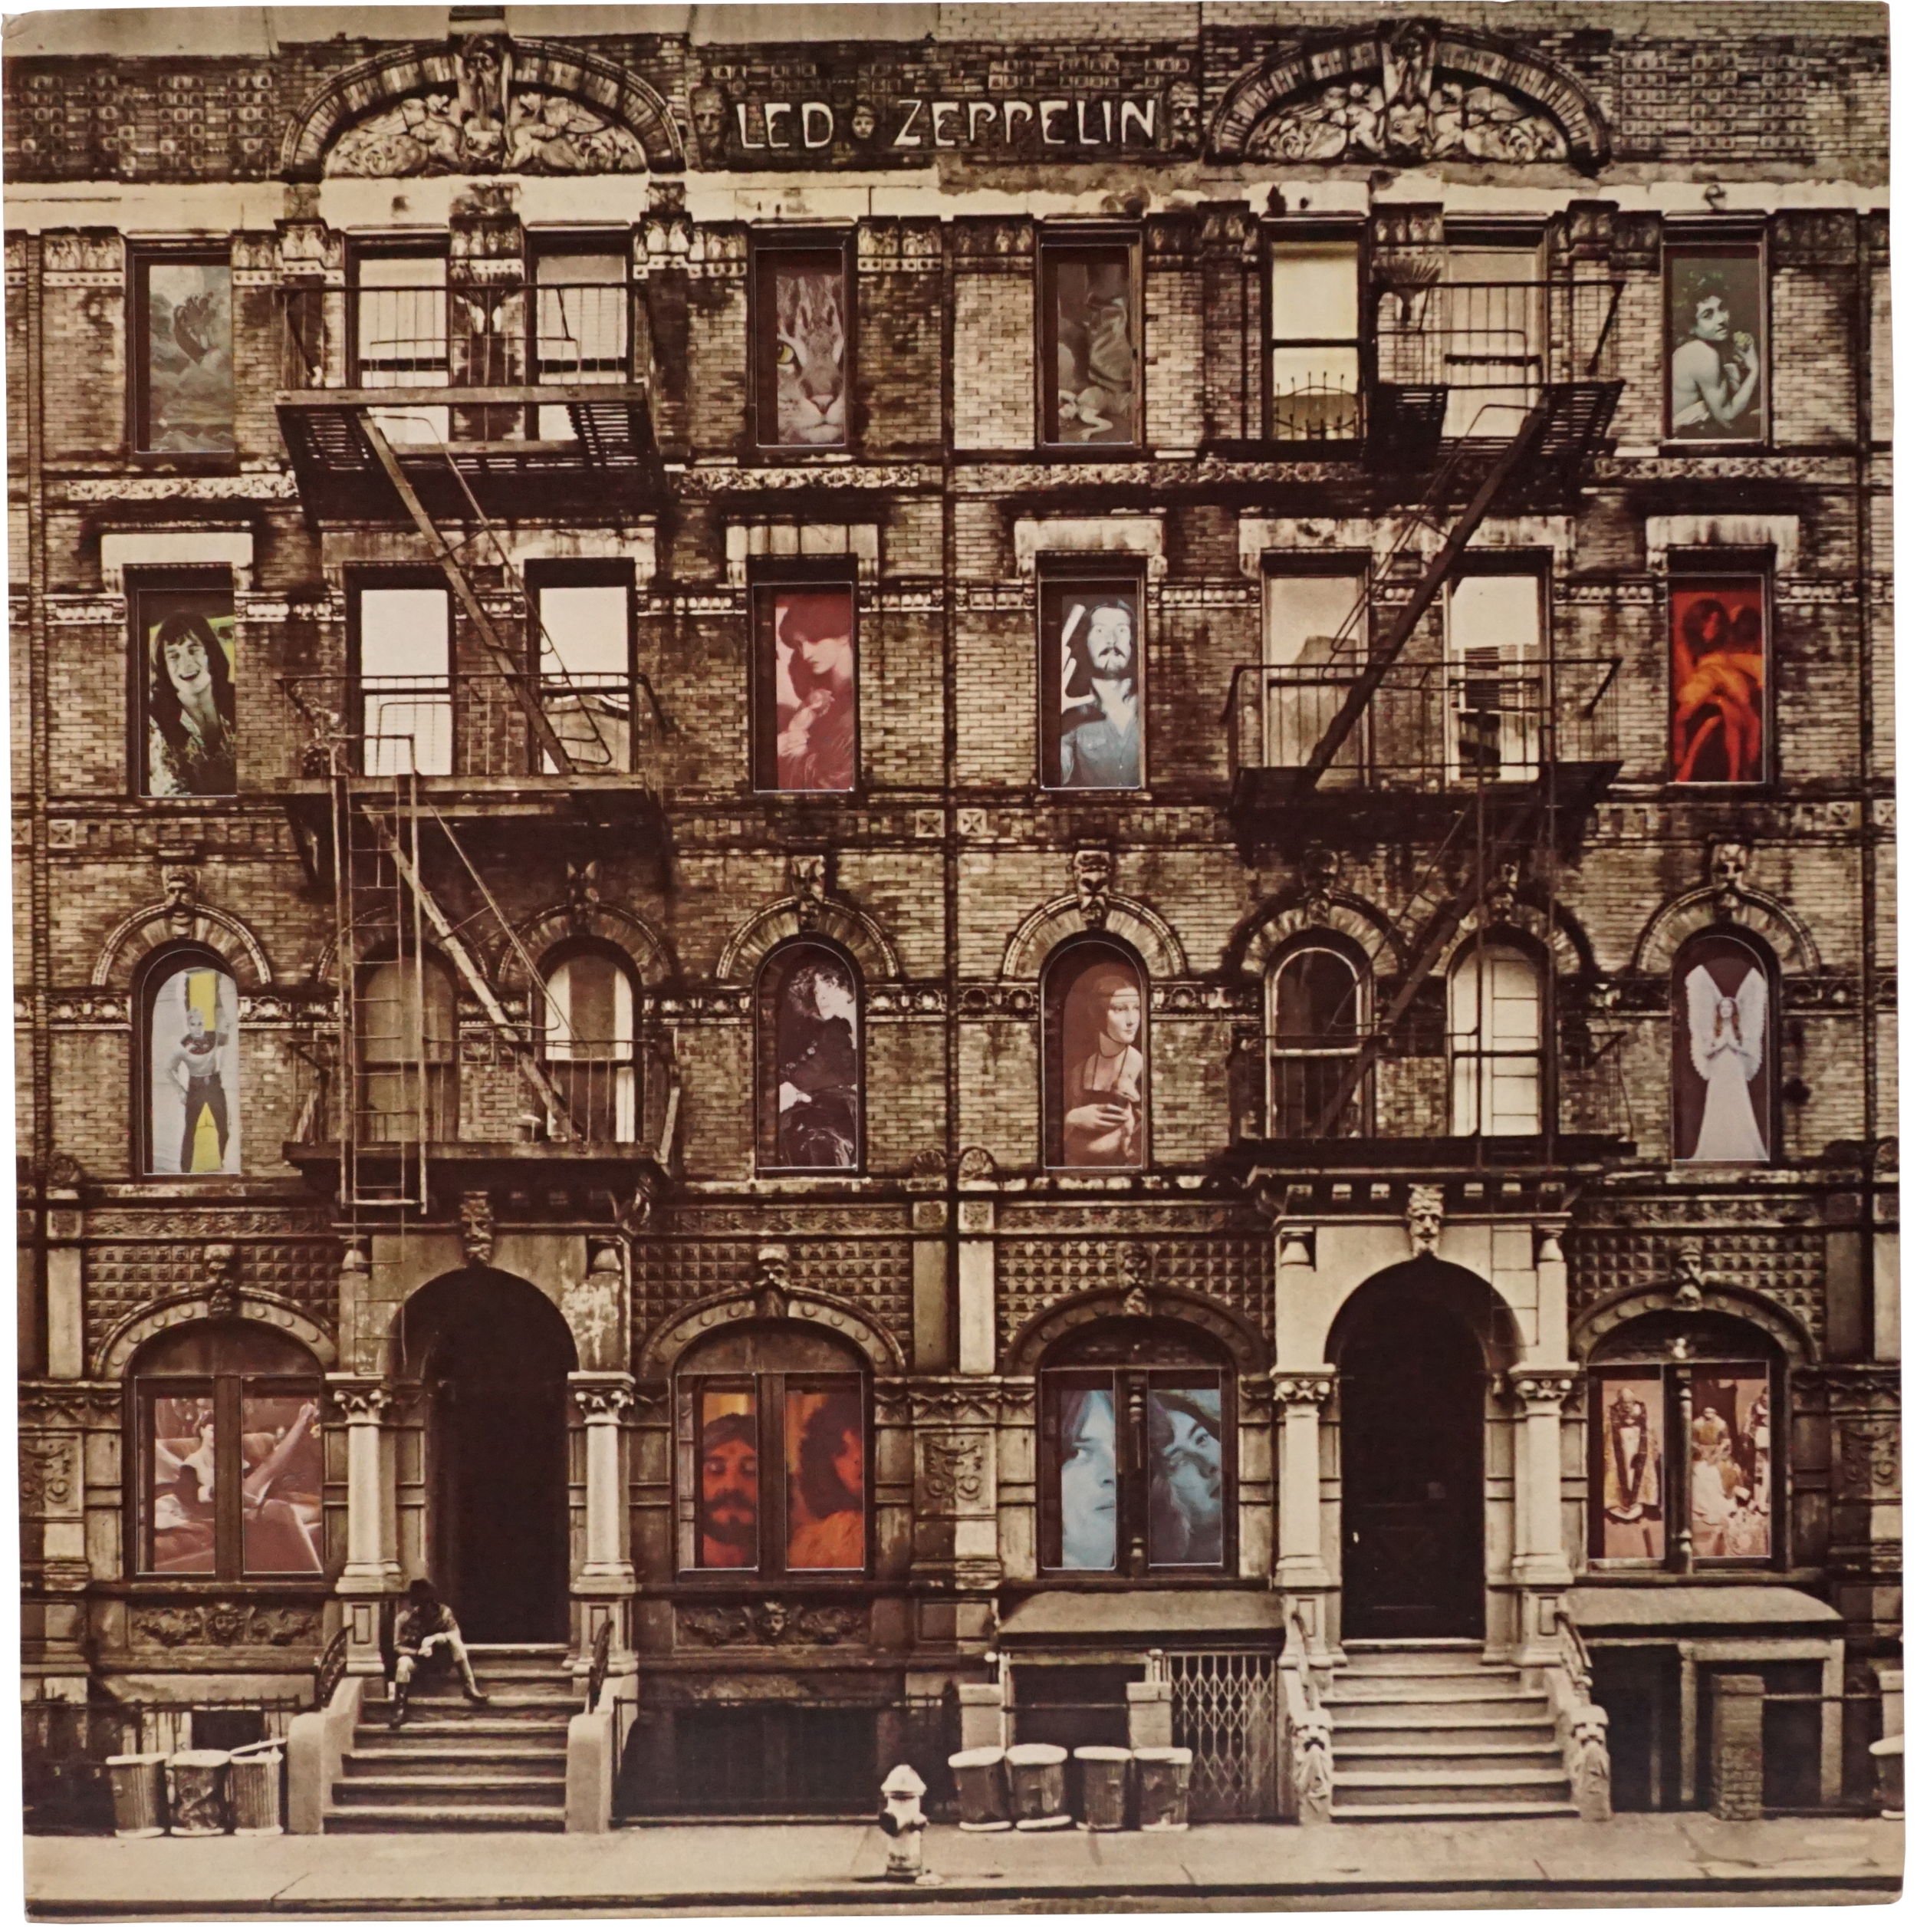 WLWLTDOO-1975-LP-LED_ZEPPELIN-PHYSICAL_GRAFFITI-FRONT-SWS2200.png